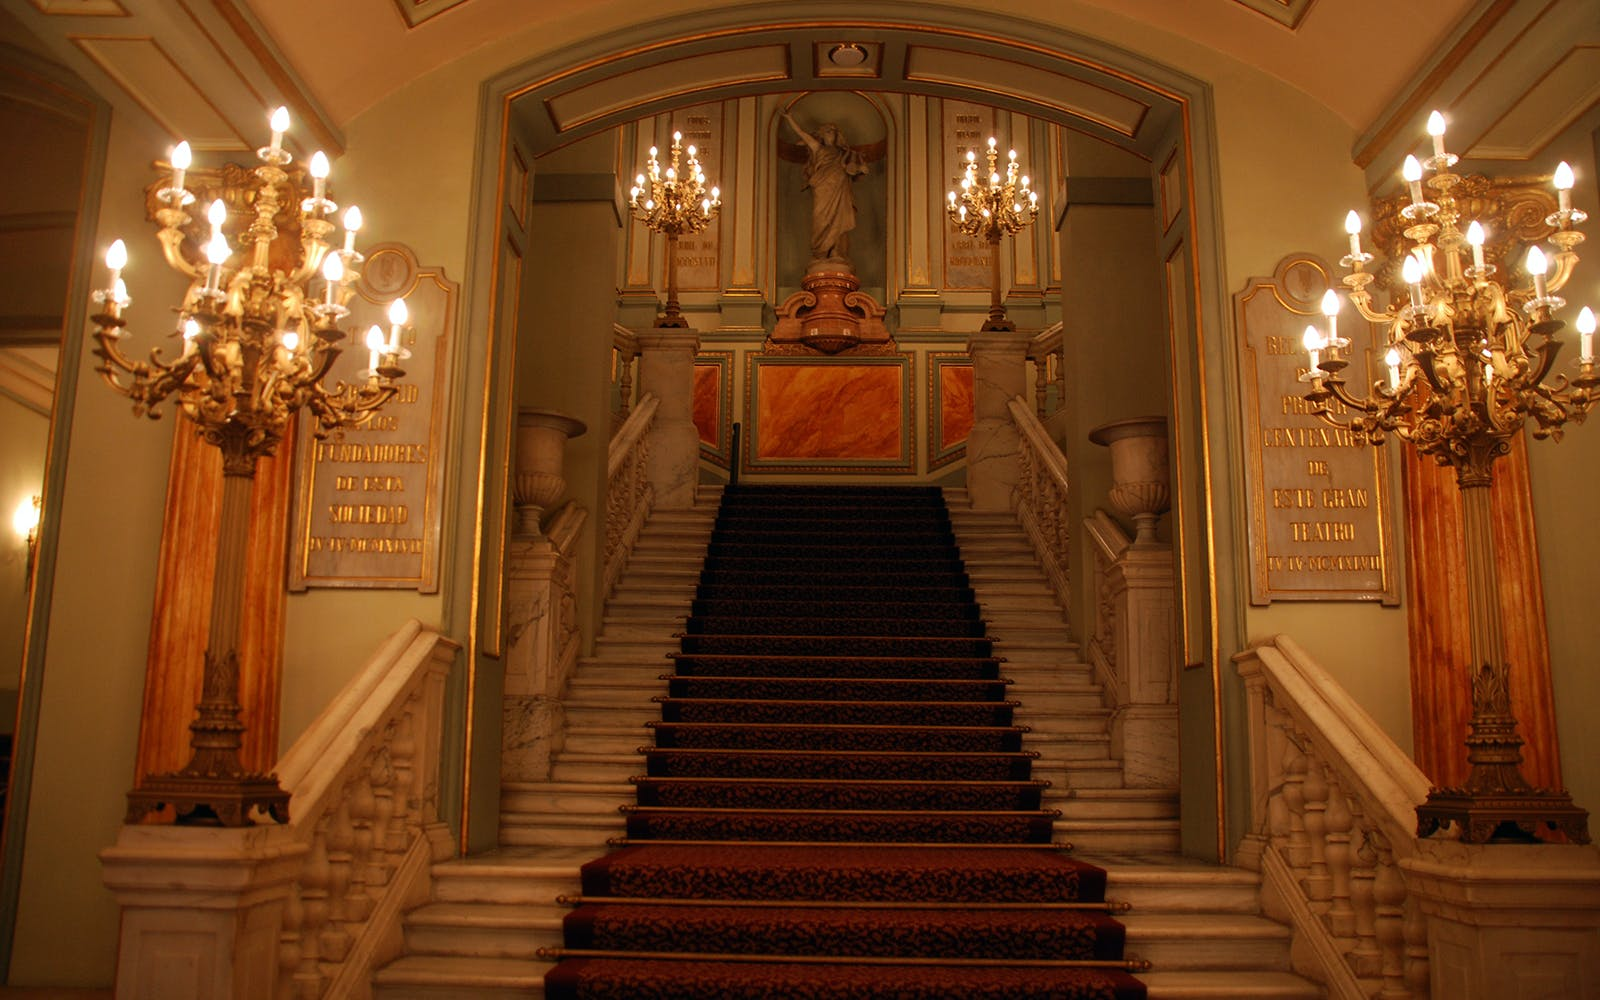 gran teatre del liceu guided tour-3